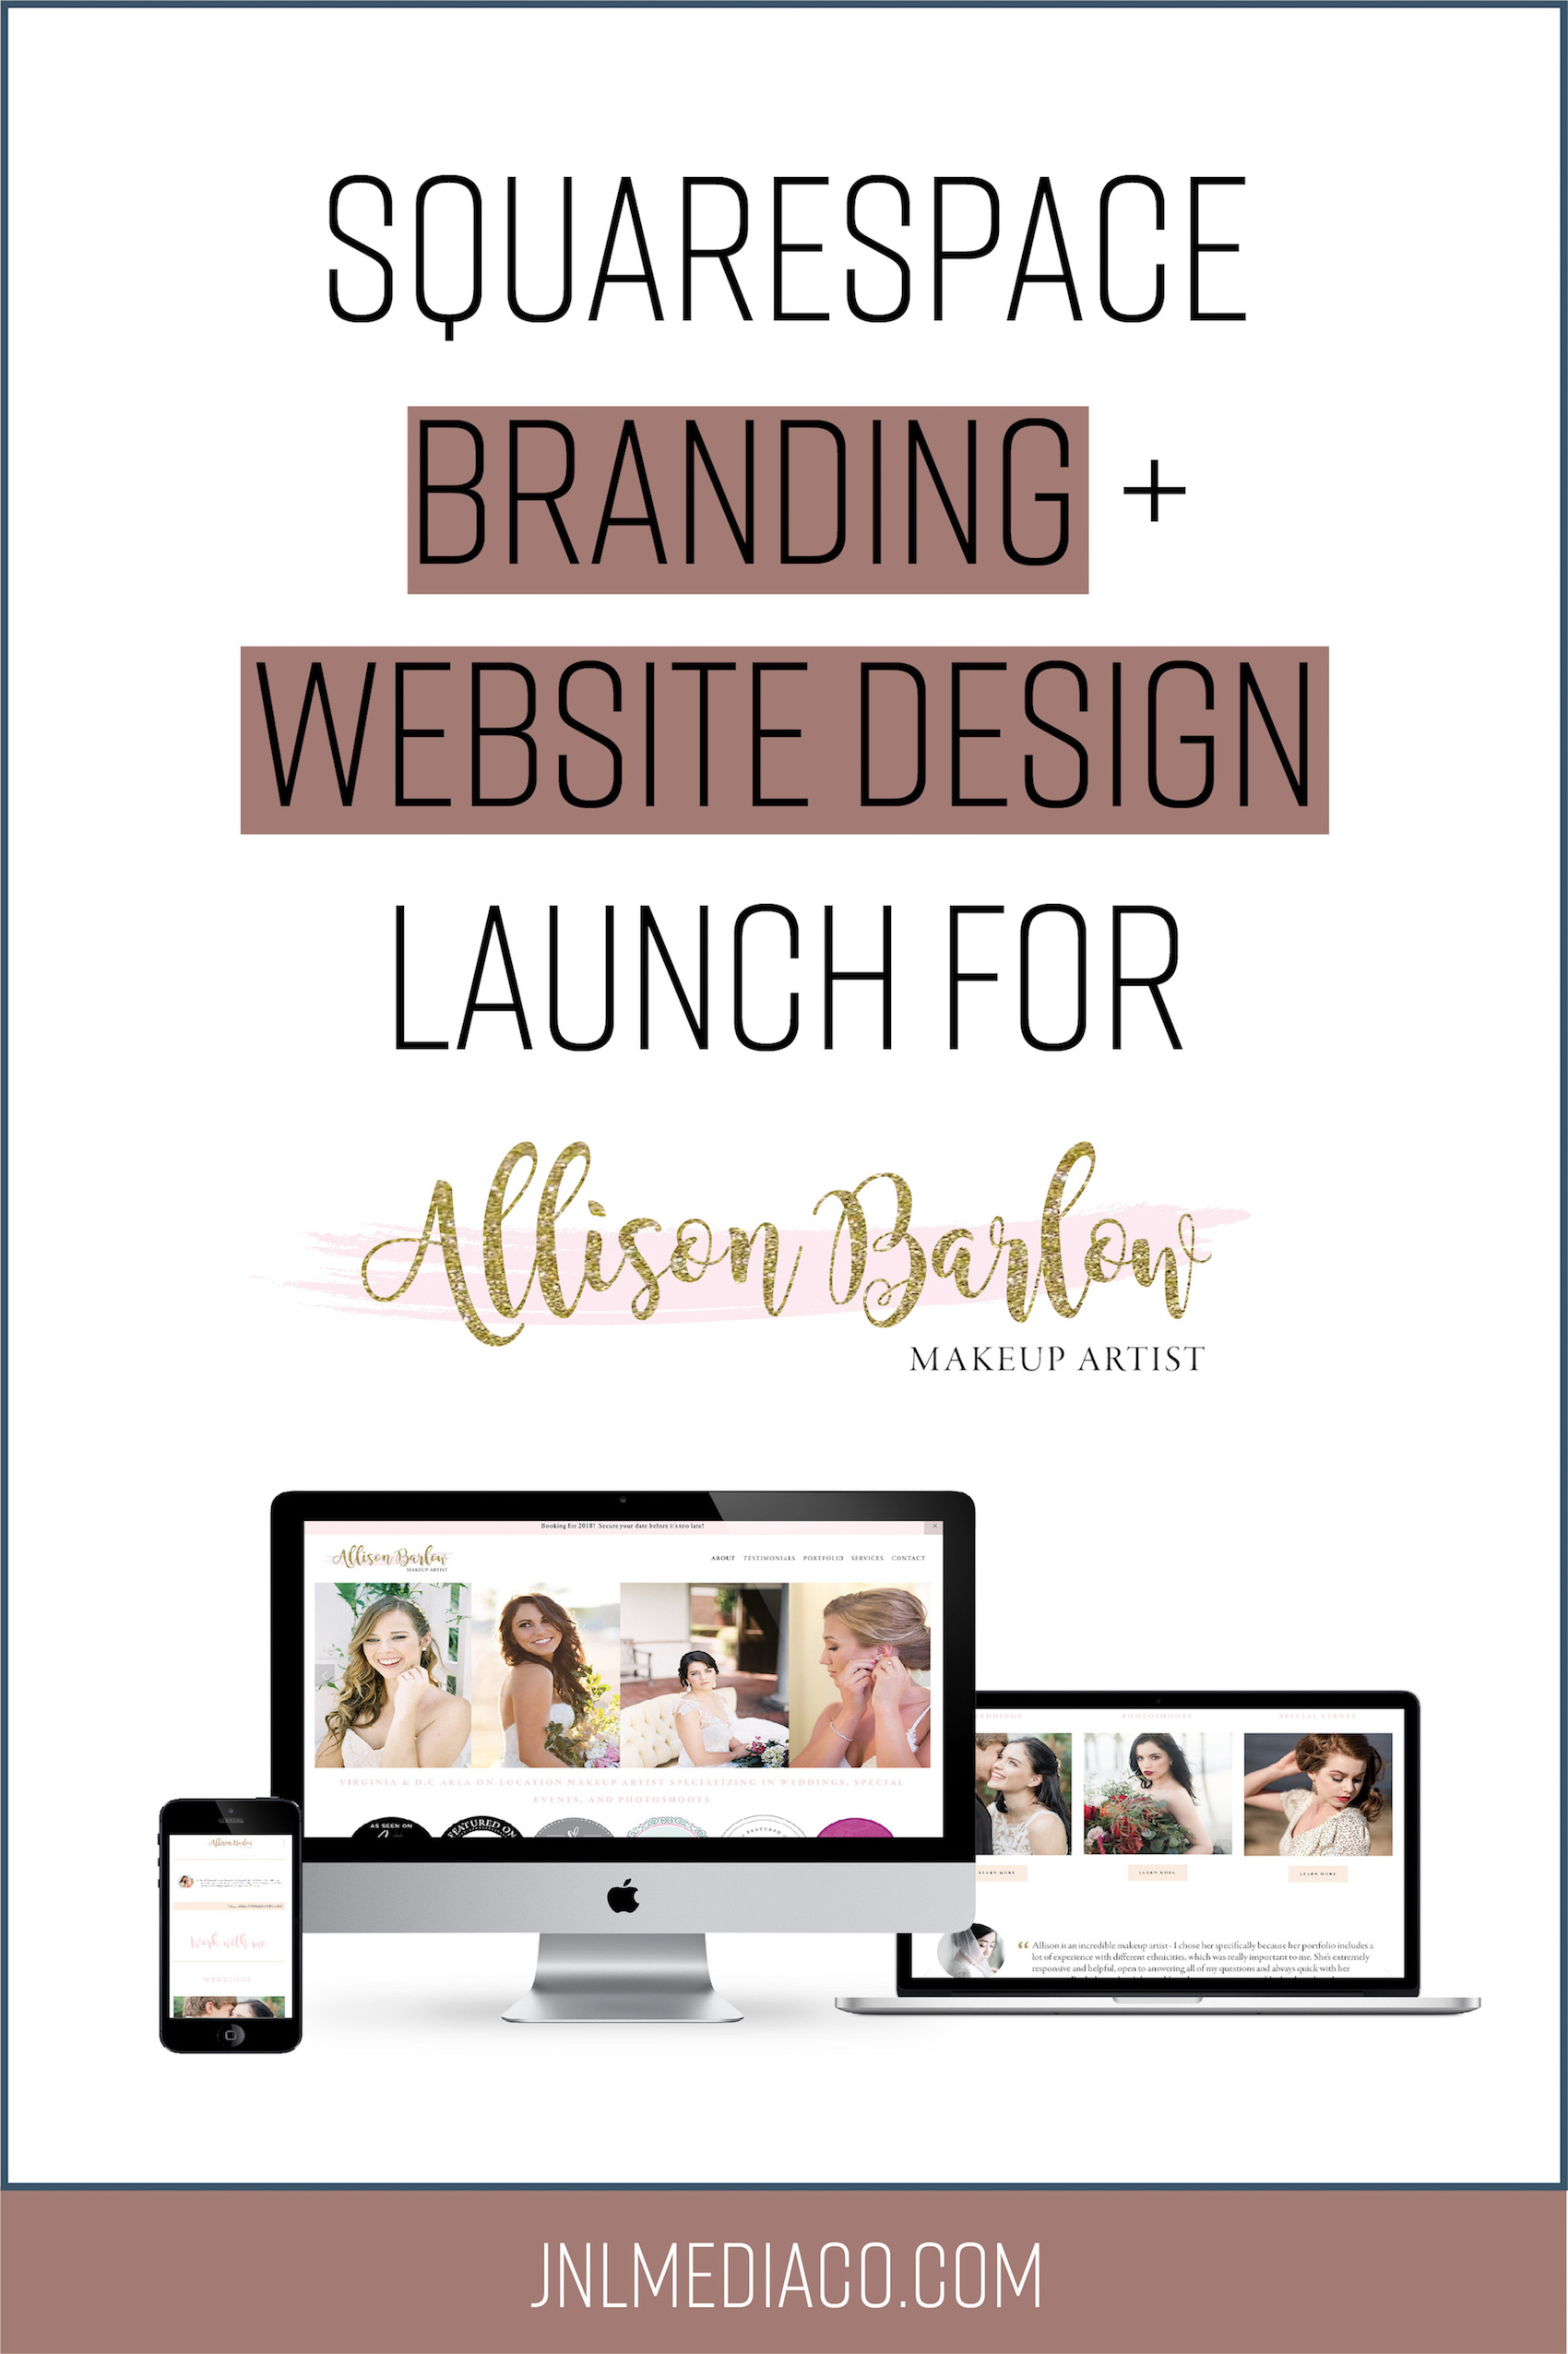 Squarespace Branding + Website Design Launch for Allison Barlow.